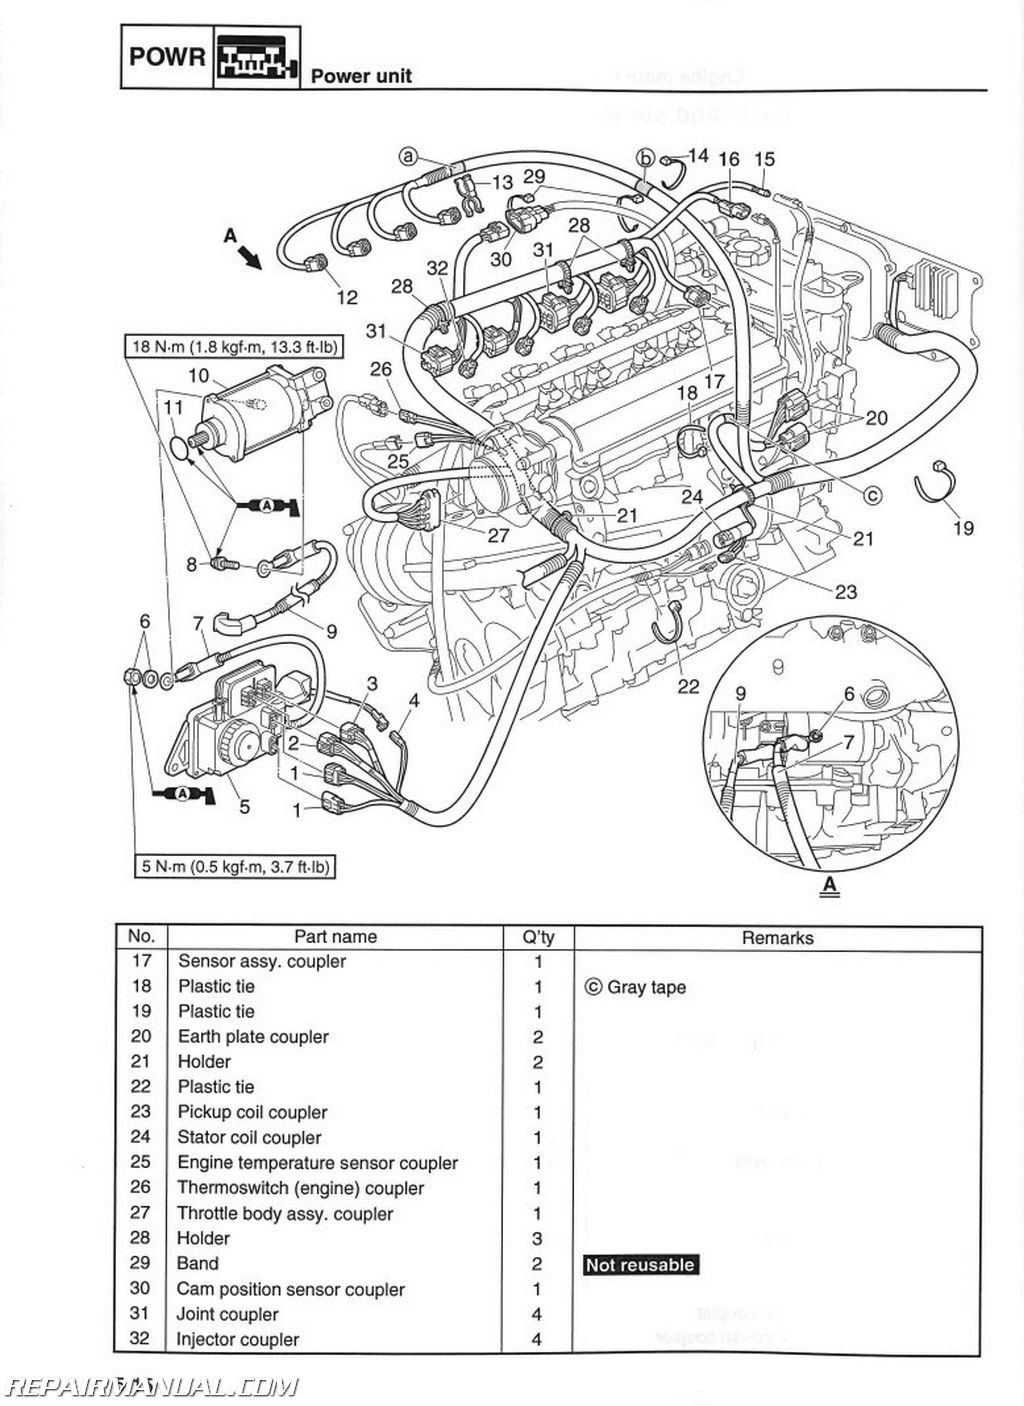 Lx277 Wiring Diagram